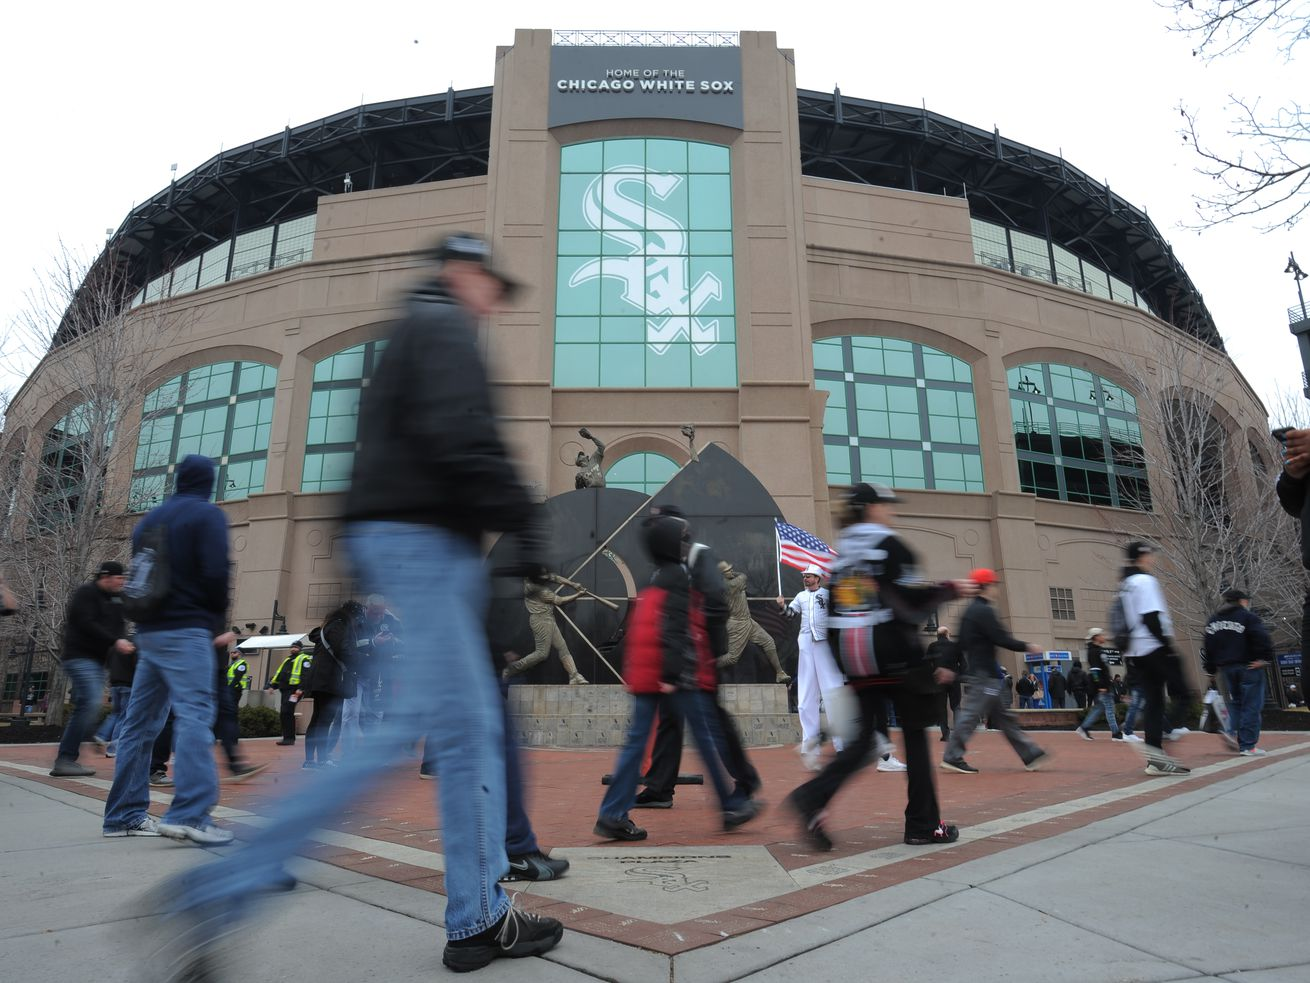 Beginning May 24, the White Sox will allow approximately 24,300 fans into Guaranteed Rate Field.